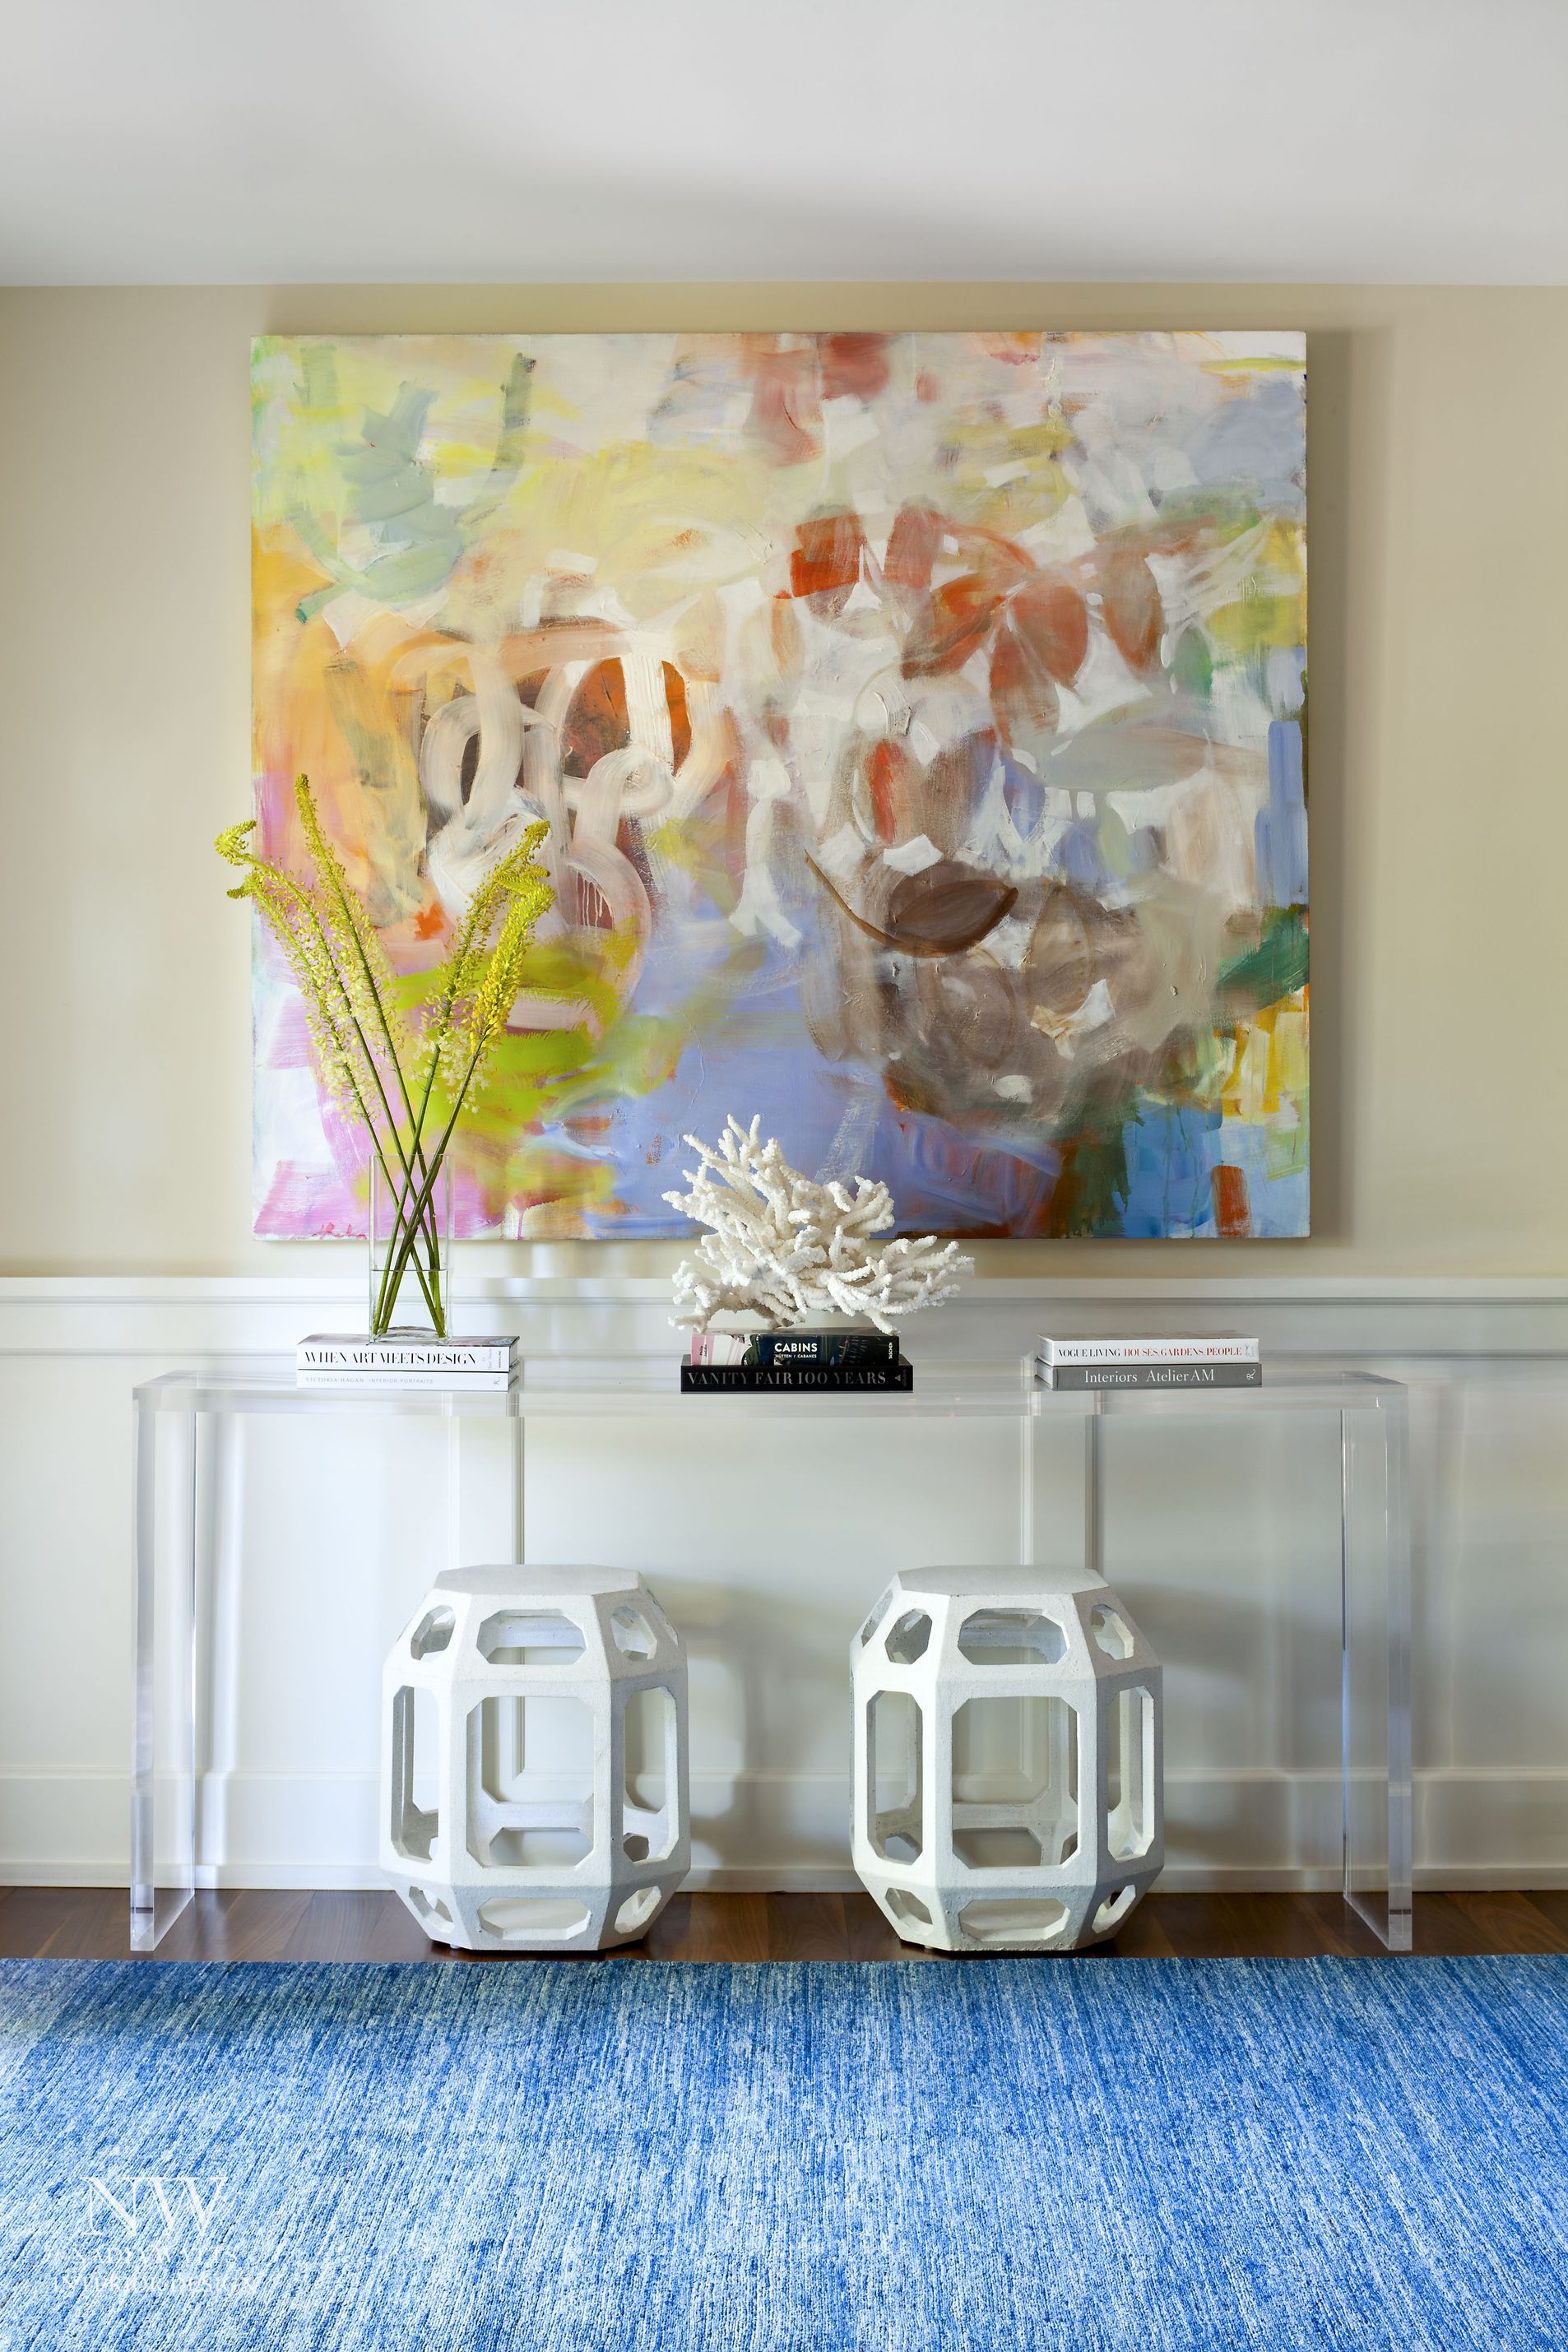 Entryway of a home with a beautiful painting hanging above an occasional table.